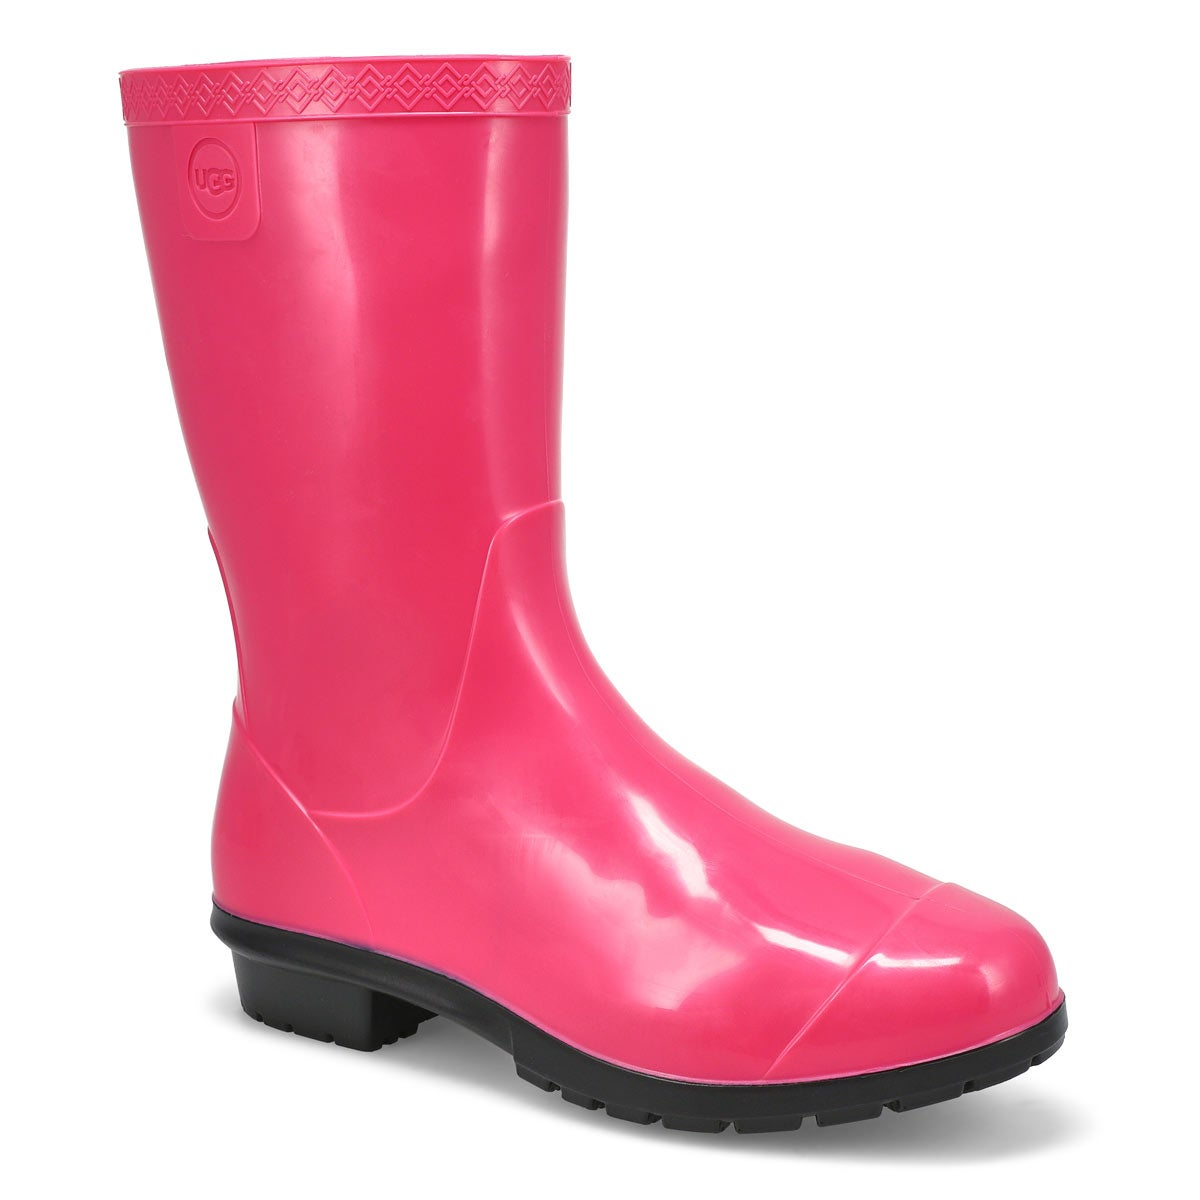 Girls' RAANA diva pink waterproof rain boots